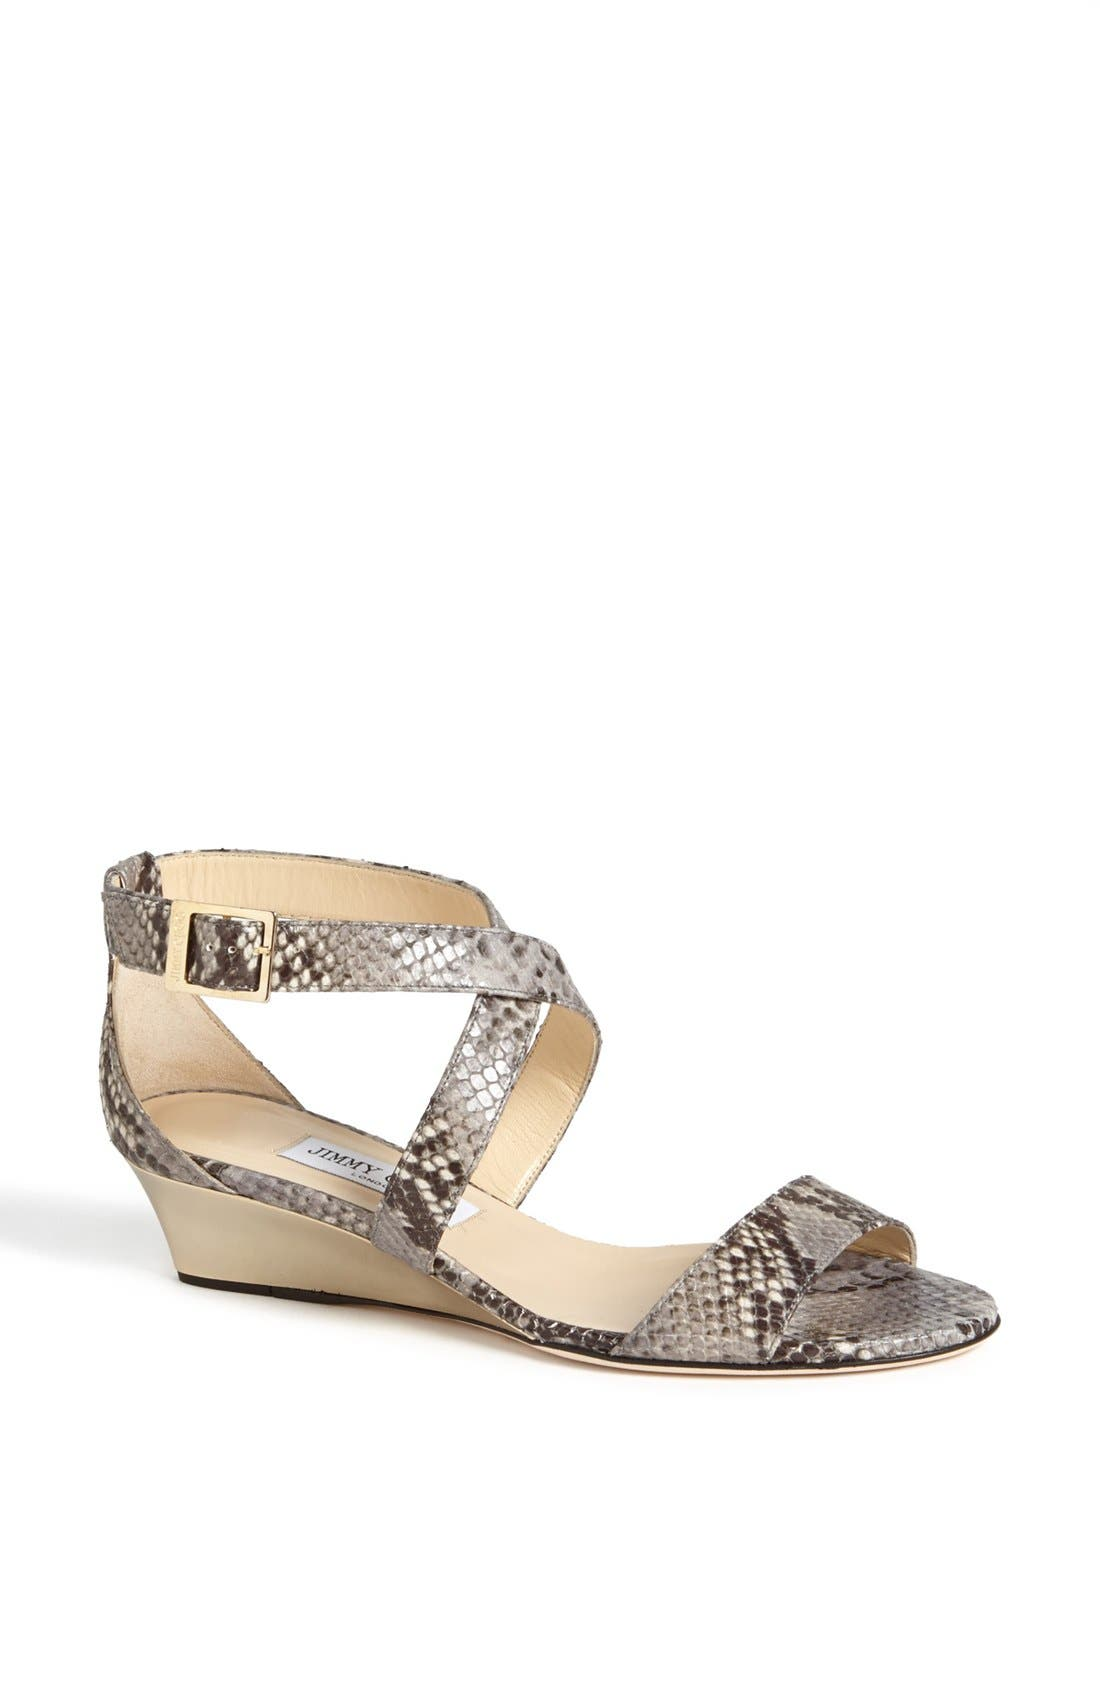 Alternate Image 1 Selected - Jimmy Choo 'Chiara' Wedge Sandal